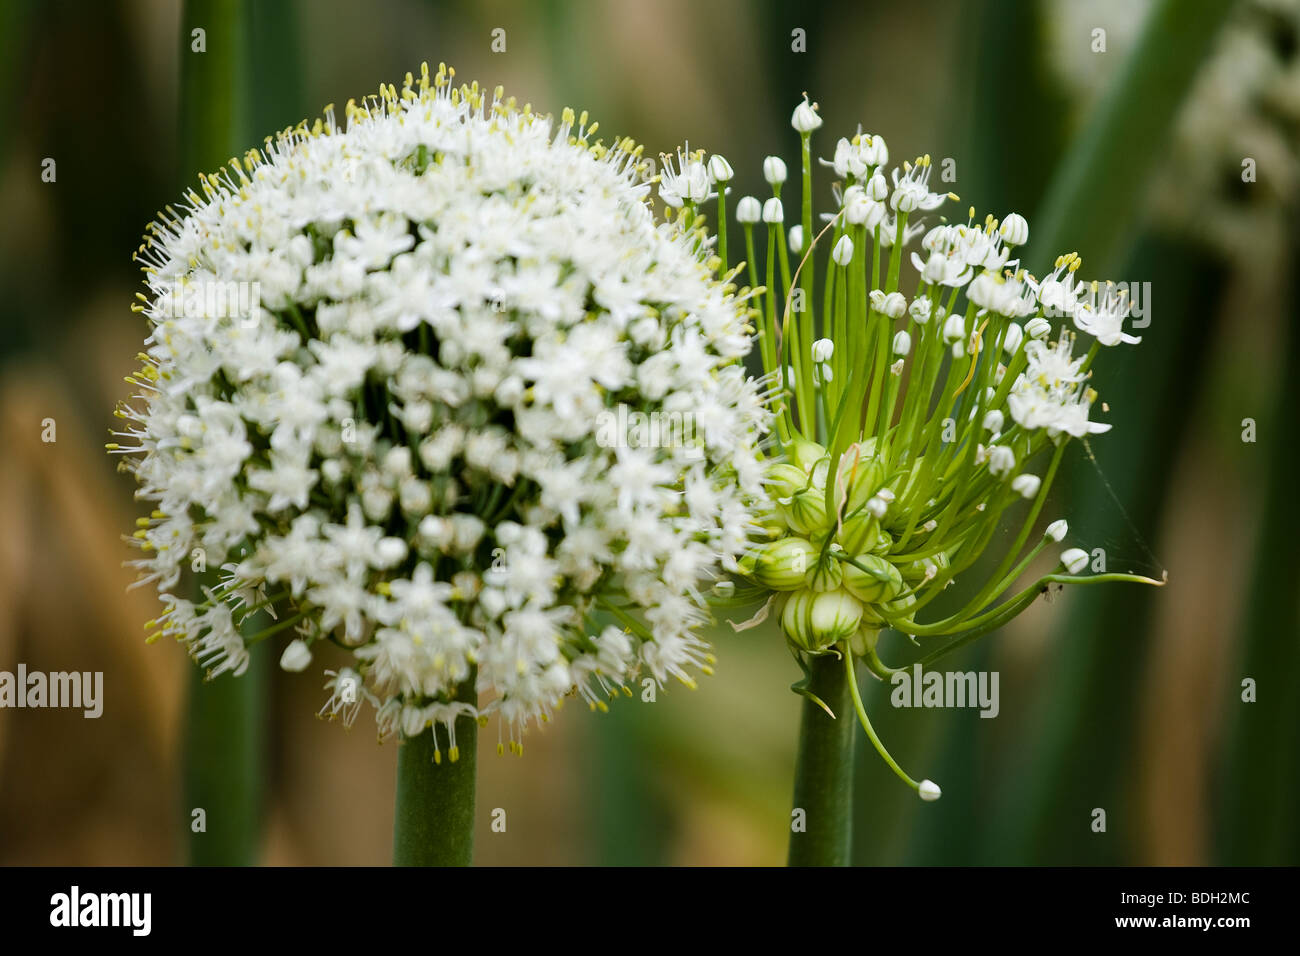 Flowering onions stock photos flowering onions stock images alamy yellow onion flower heads with seeds stock image mightylinksfo